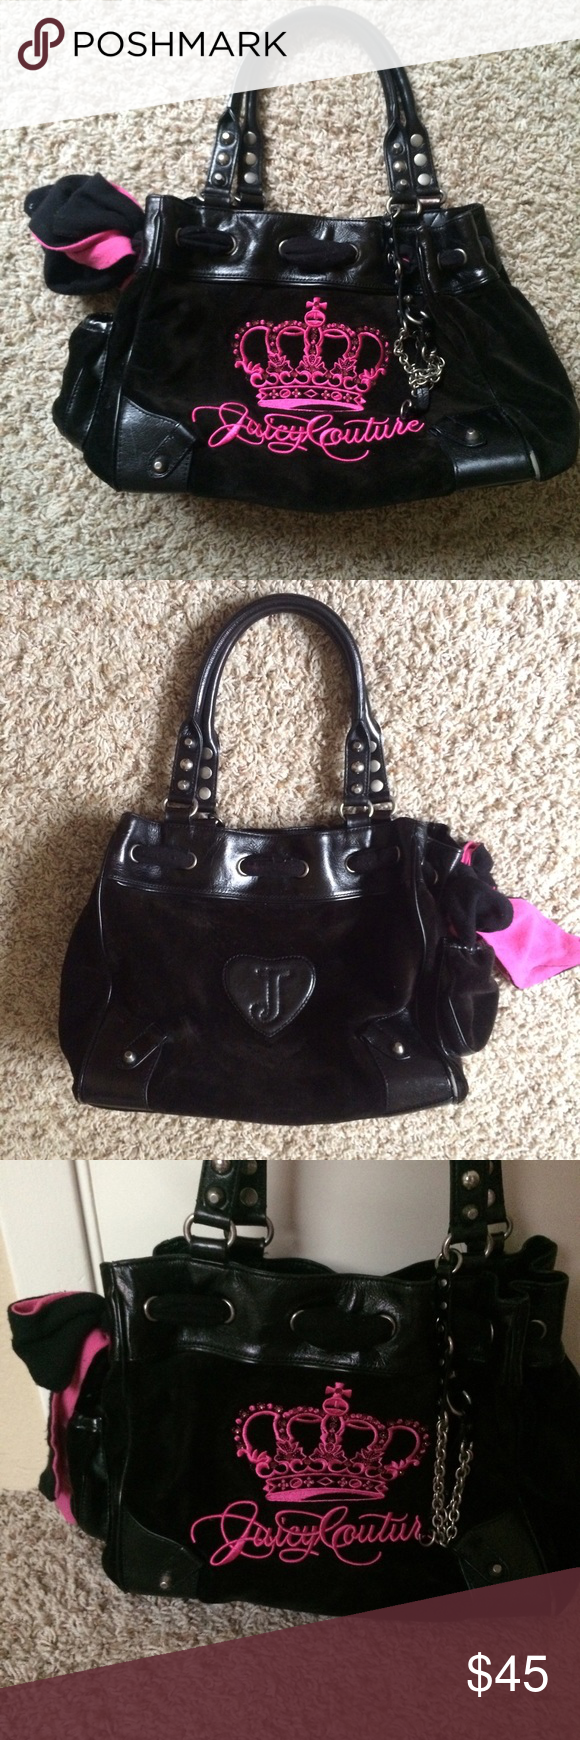 Juicy couture black and pink purse Black and pink juicy couture bag with silver accents in great condition!! Juicy Couture Bags Shoulder Bags